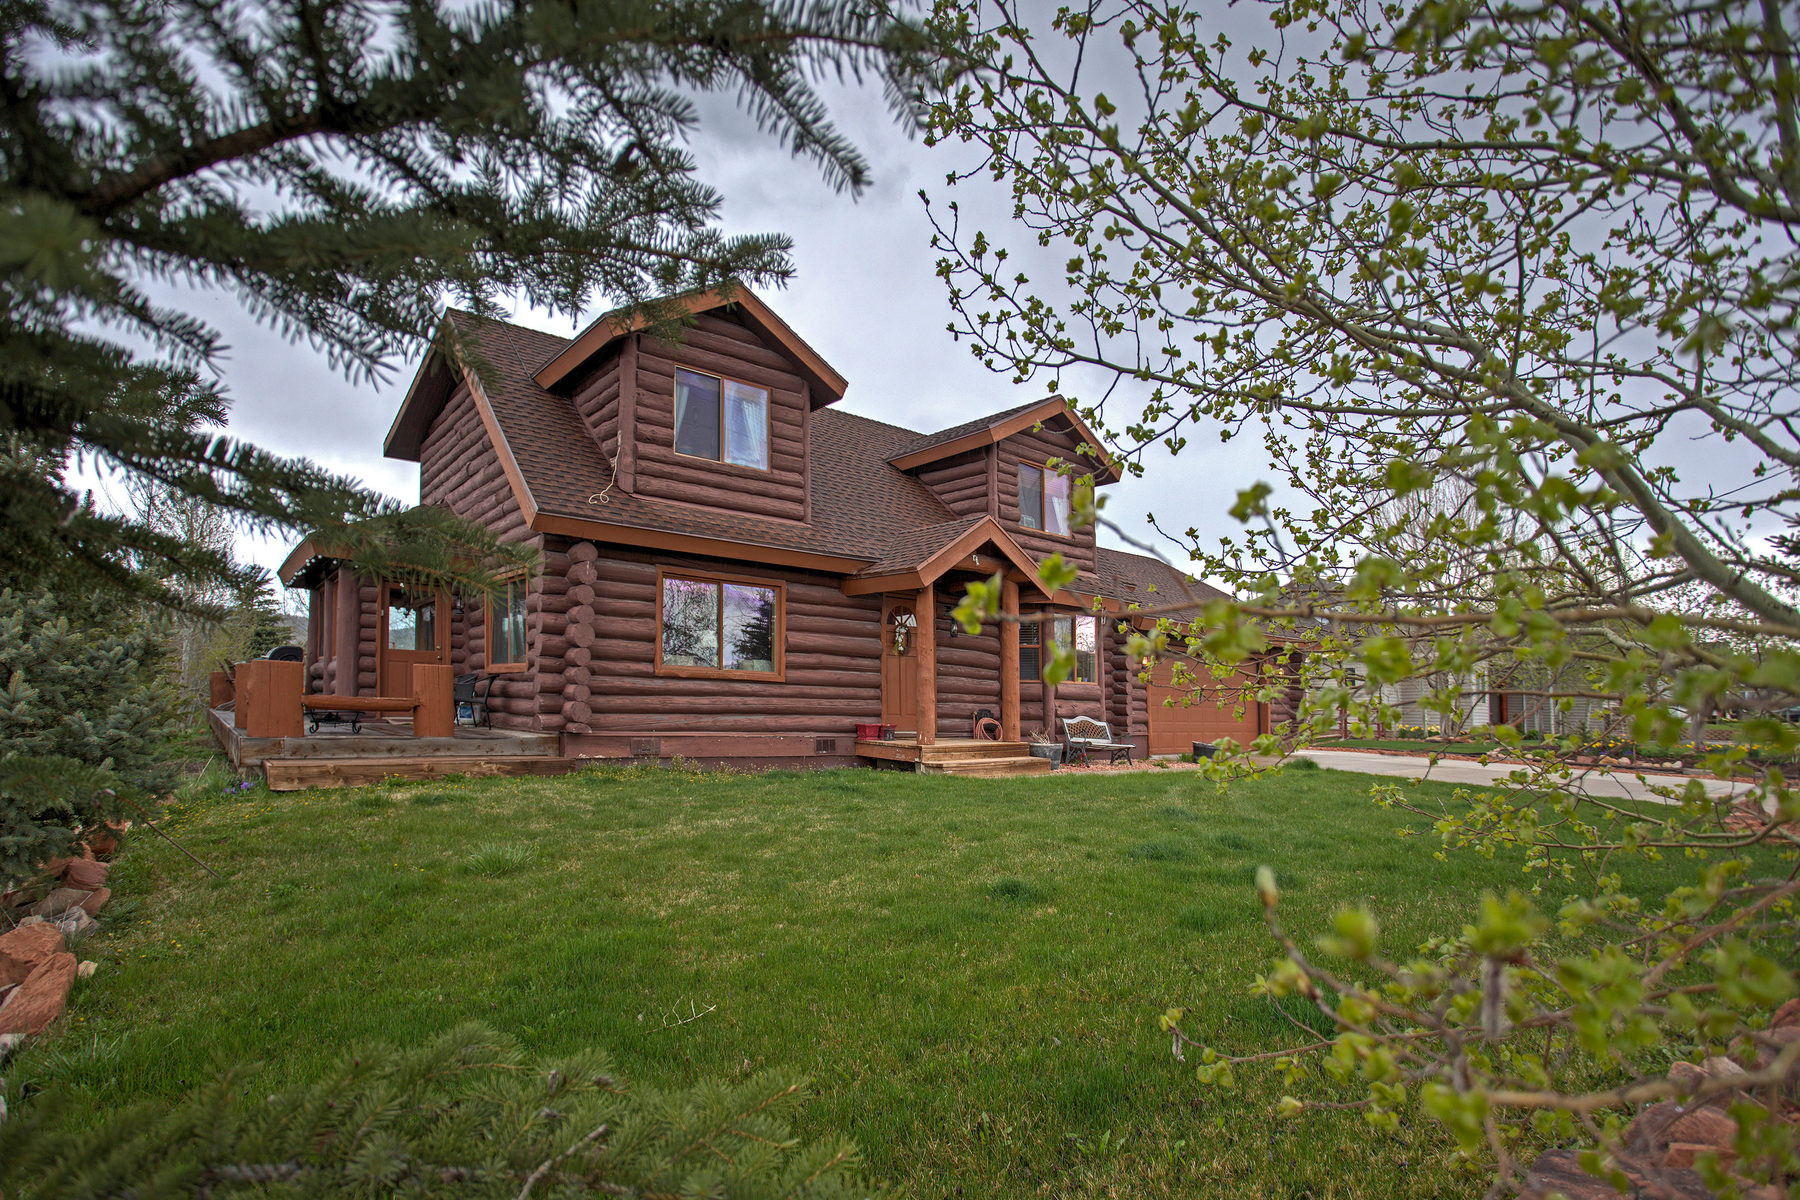 Single Family Home for Sale at Beautifully Redone Park City Home 610 E Parkway Dr Park City, Utah, 84098 United States